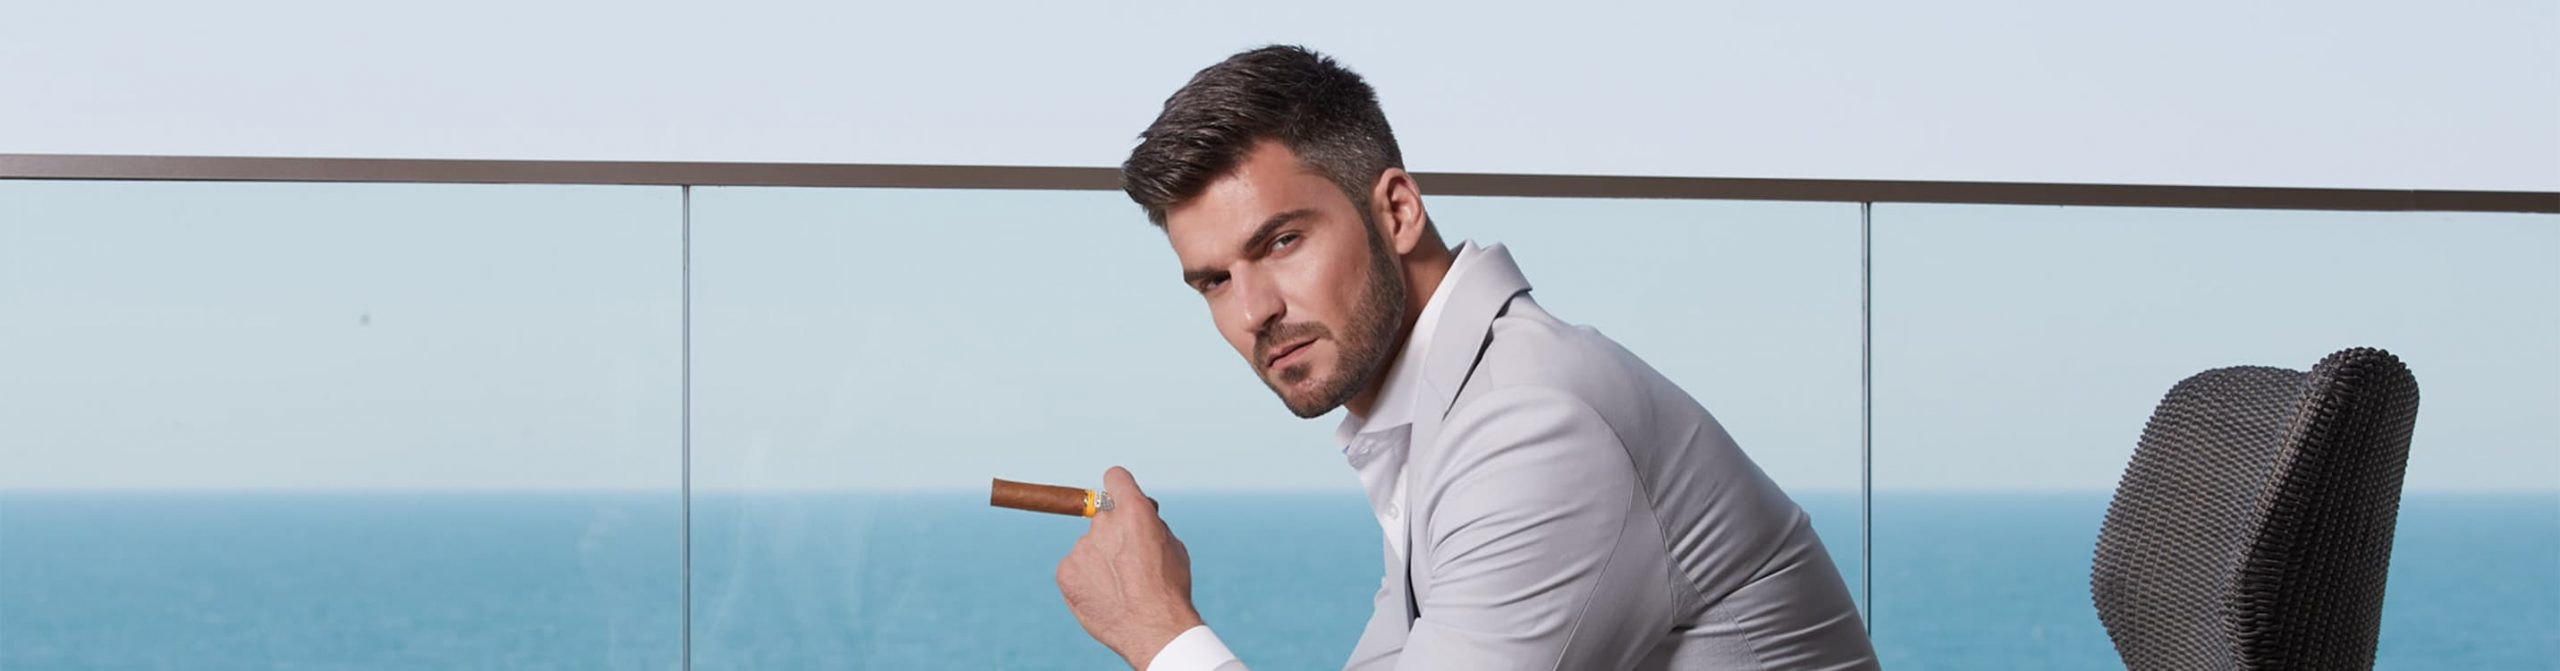 A serious man holds an unlit cigar on a waterfront apartment balcony